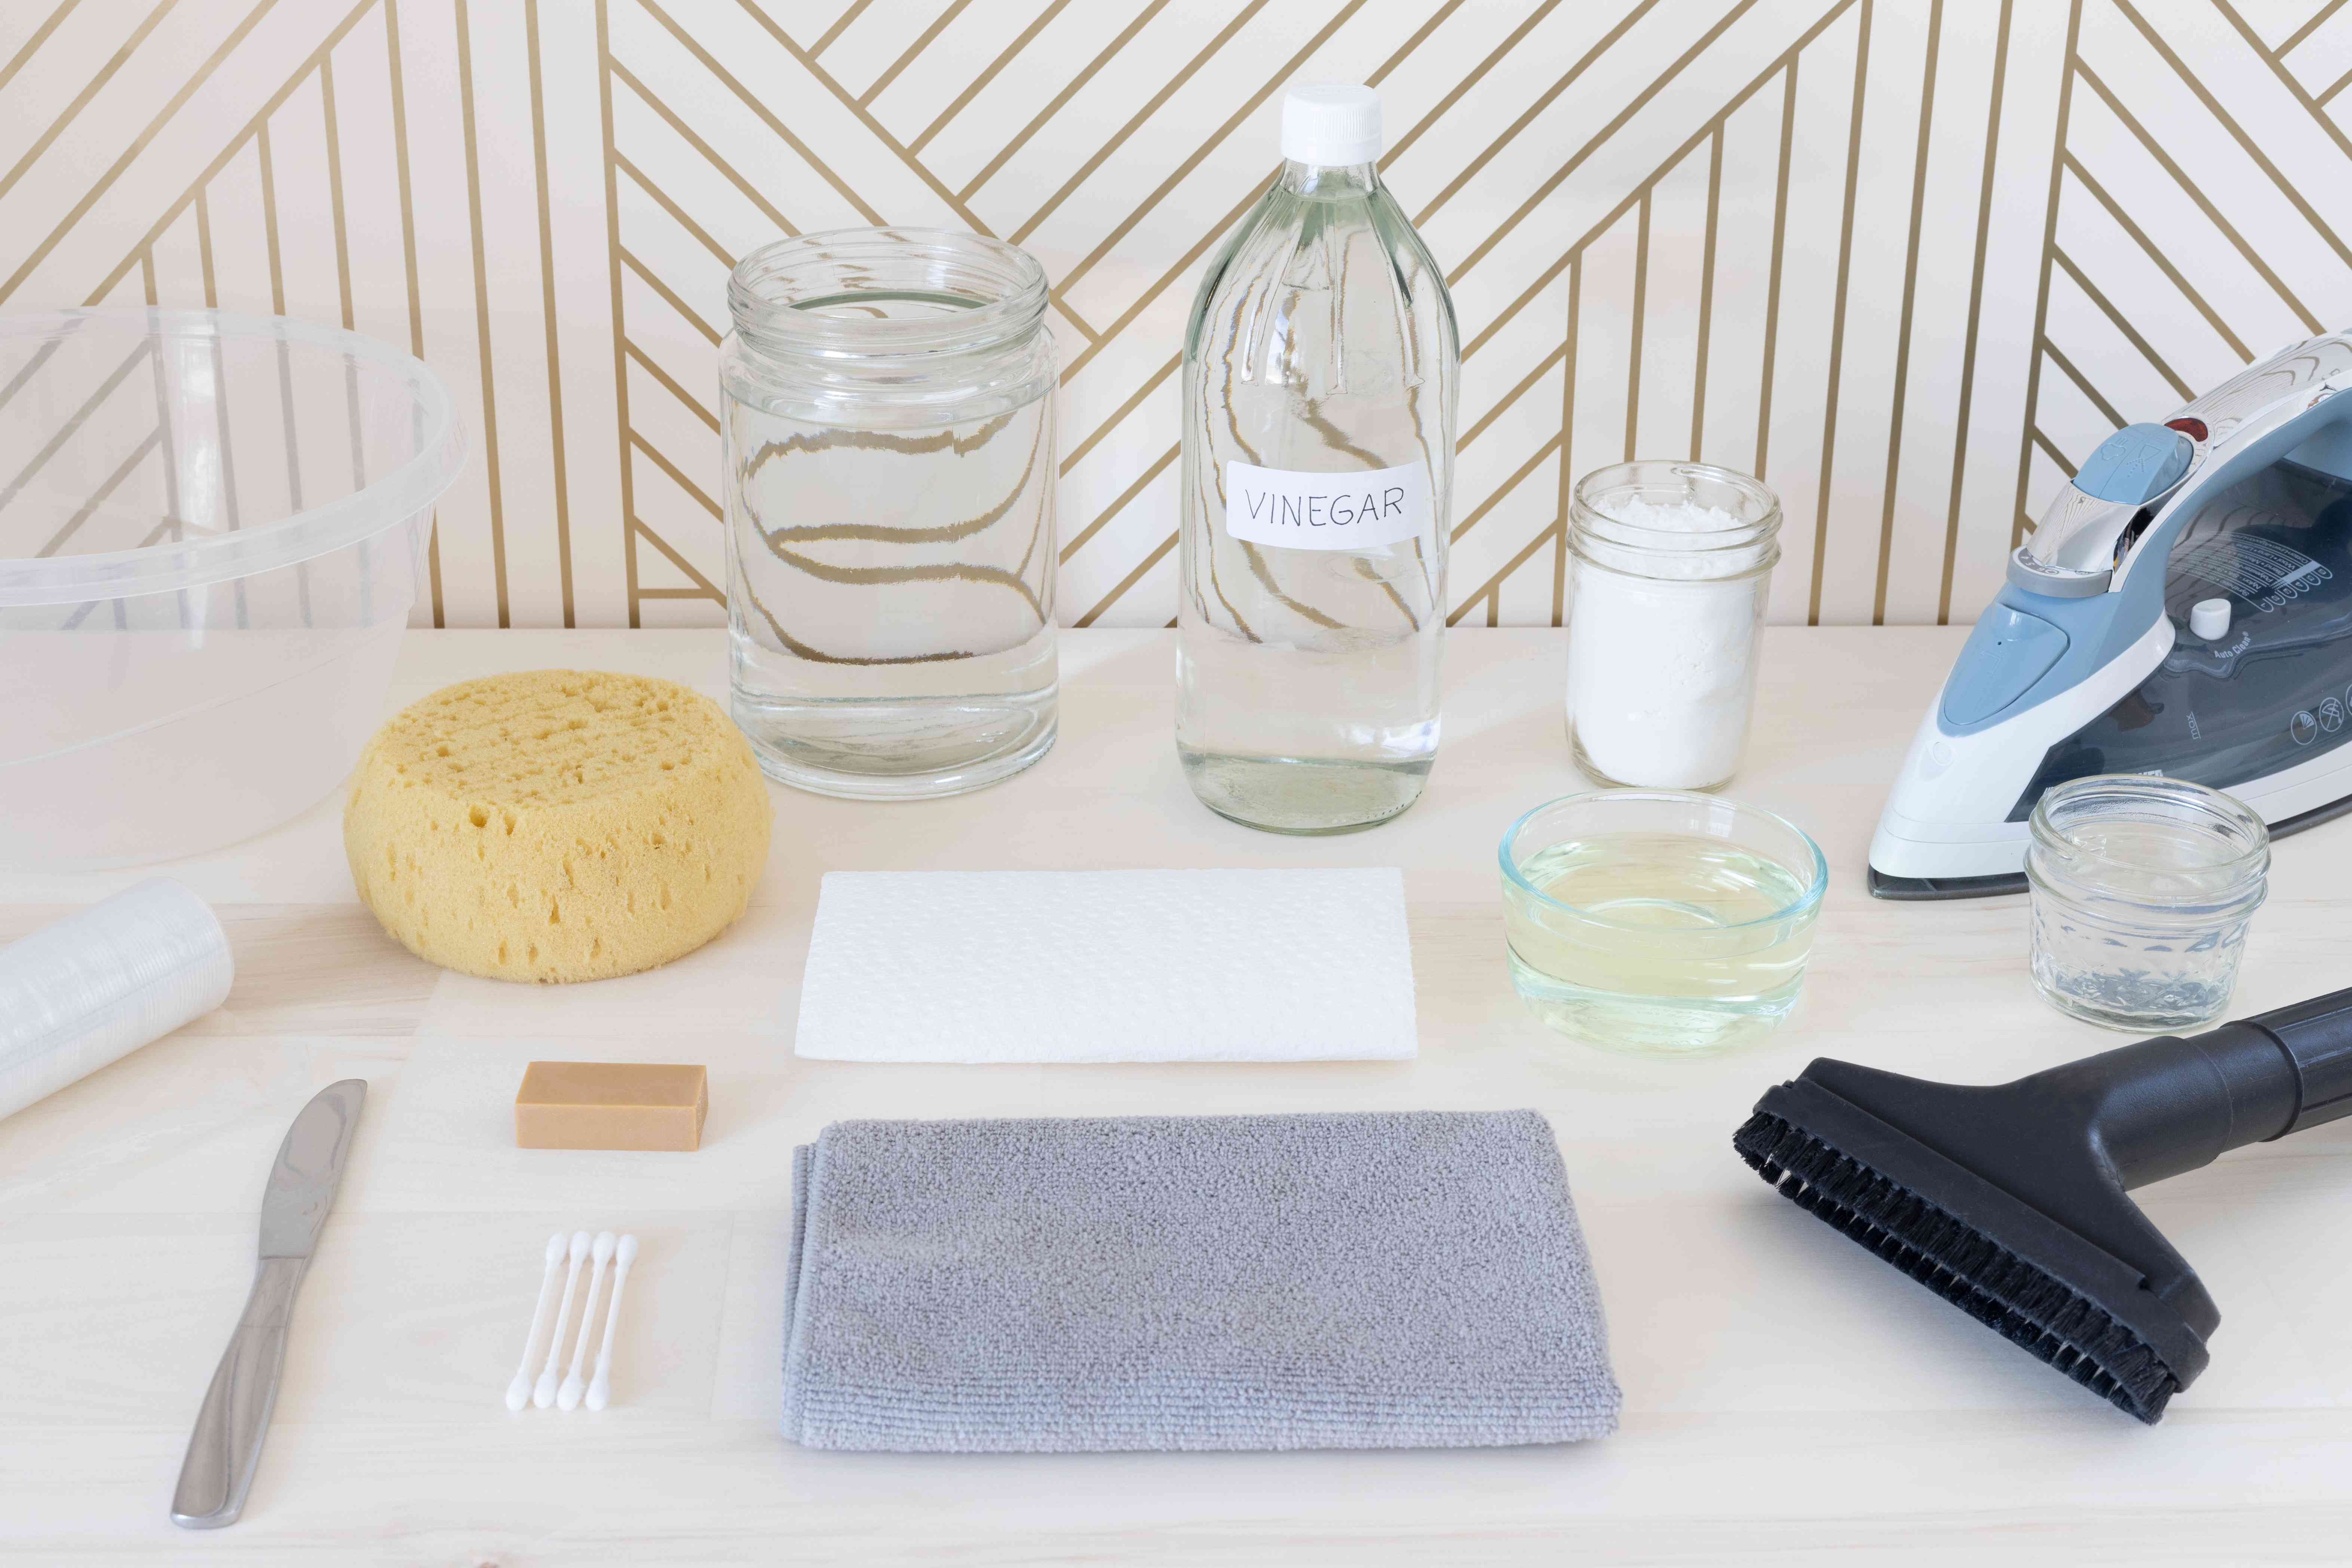 Materials and tools laid in front of white and gold striped wallpaper for cleaning